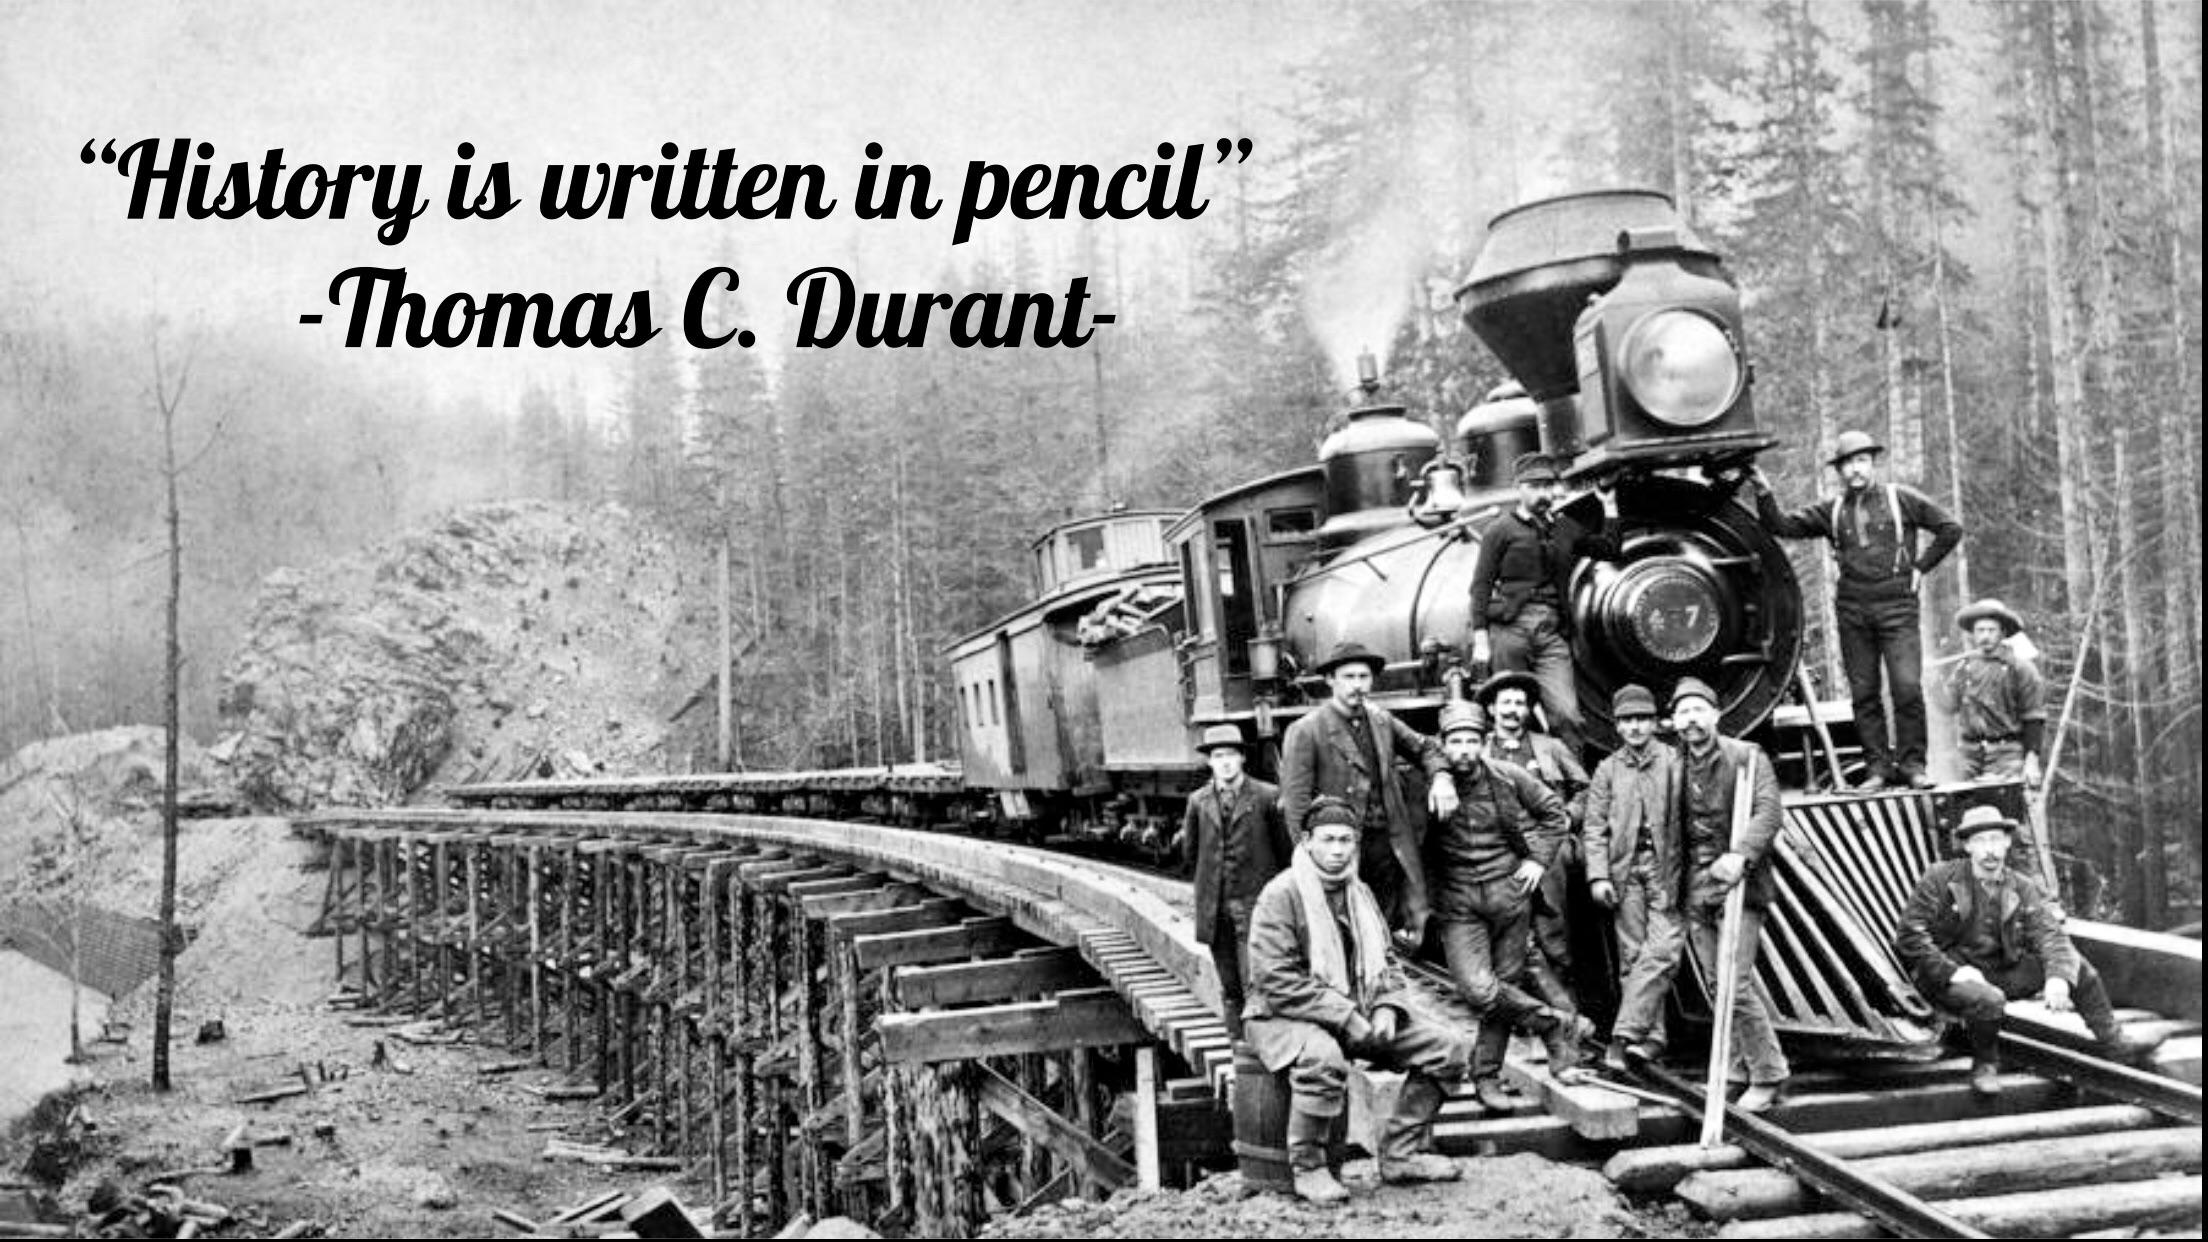 """History is written in pencil"" -Thomas Durant. [960×640]"